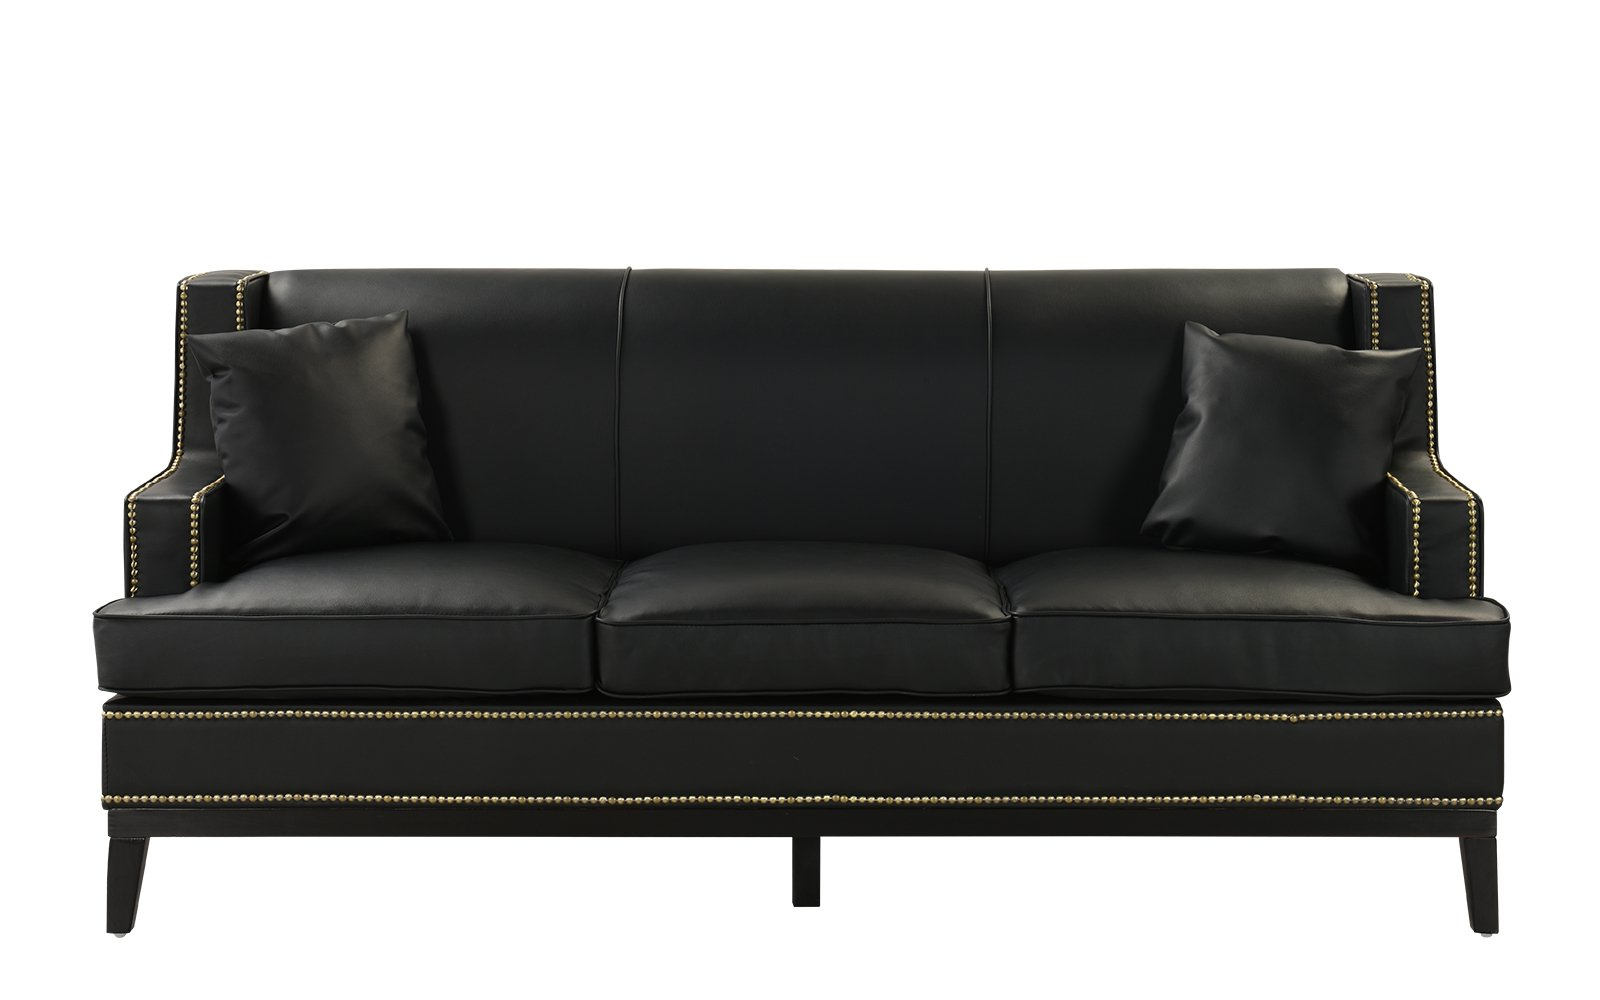 Bonded Leather All In One Sectional Sofas With Ottoman And 2 Pillows Brown Within Popular Black Modern Bonded Leather Sofa With Nailhead Trim Detail (View 14 of 20)